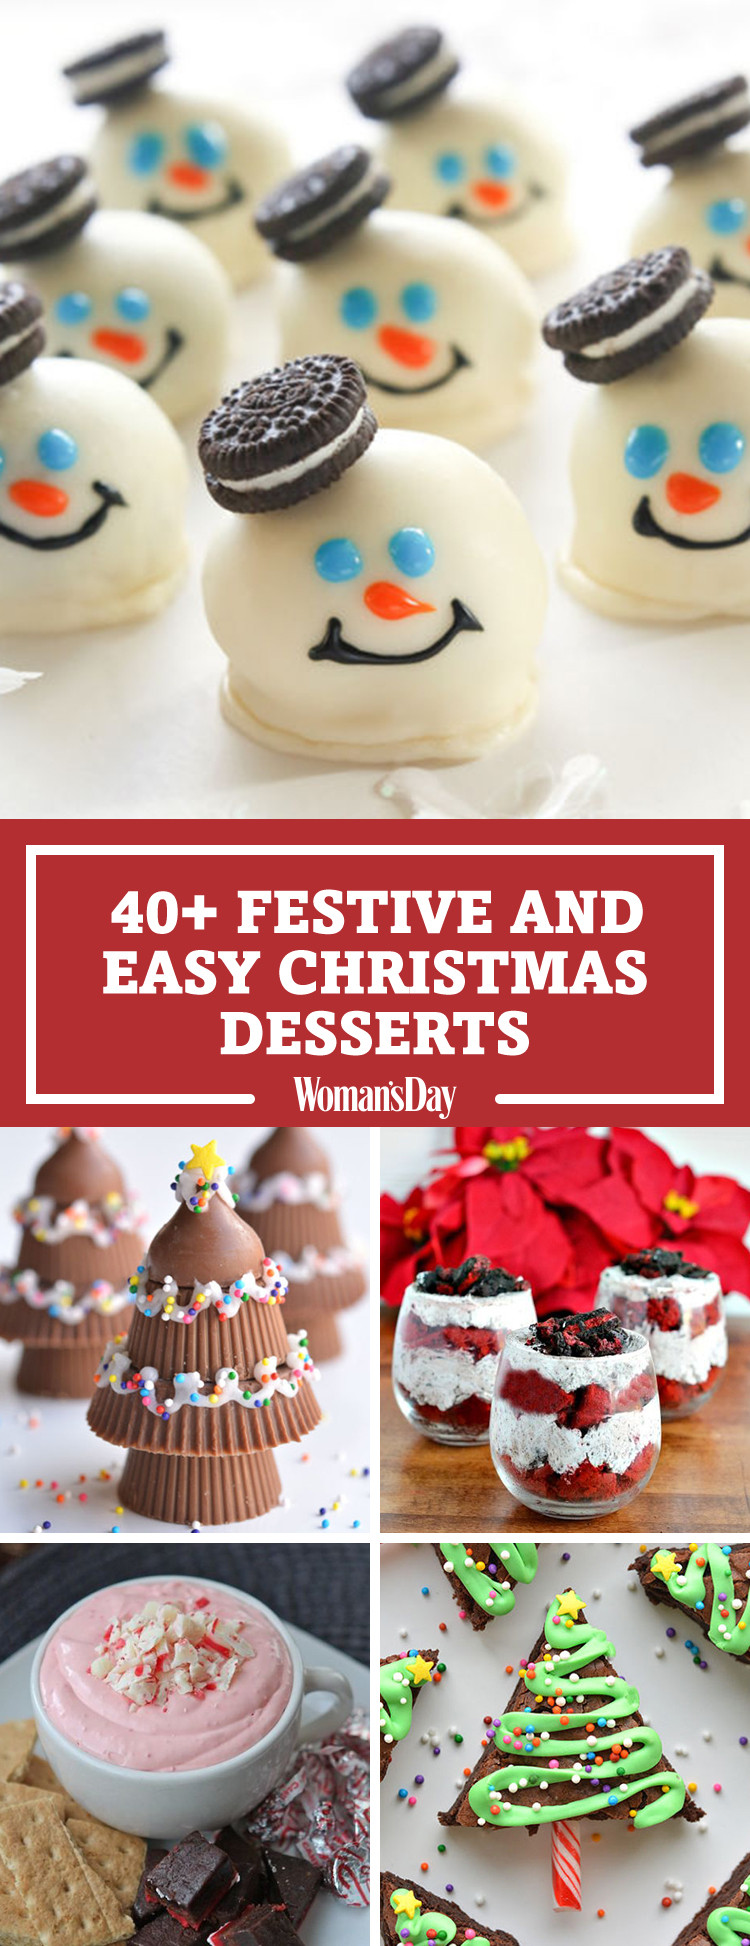 Fun Easy Christmas Desserts  57 Easy Christmas Dessert Recipes Best Ideas for Fun